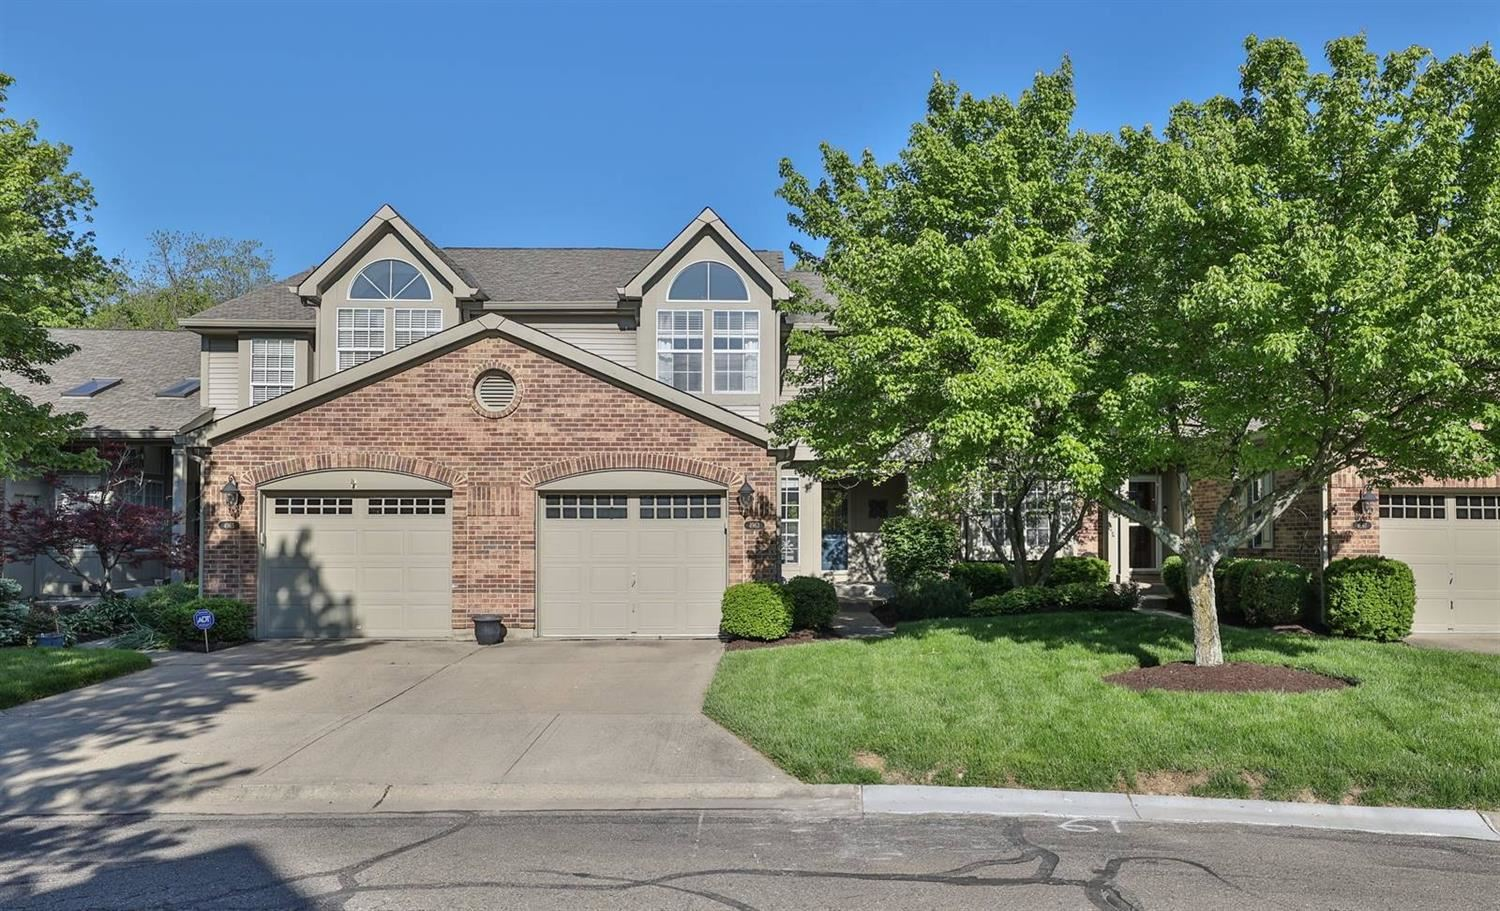 4963 Lord Alfred Court, Sharonville, OH 45241 - #: 1700160